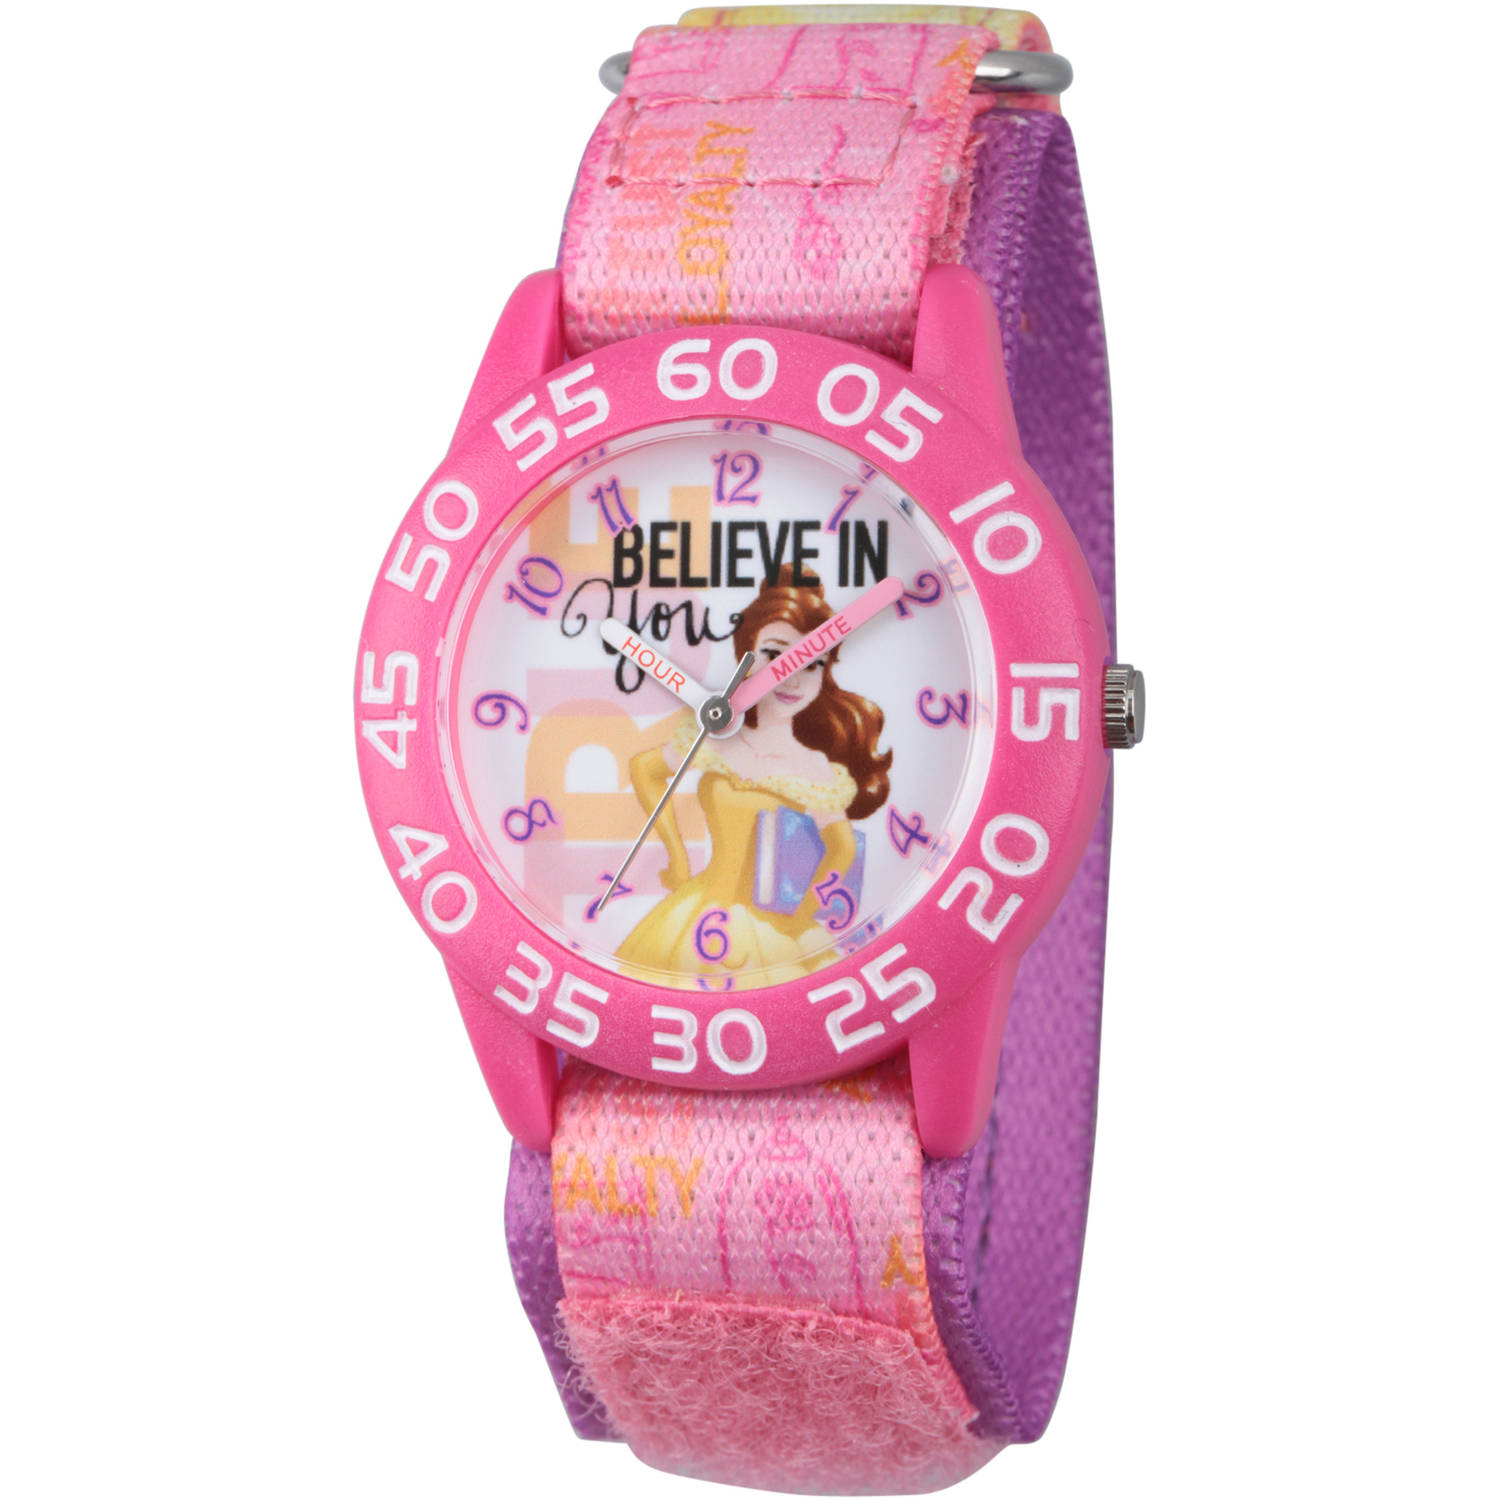 Disney Princess Belle Girls' Pink Plastic Time Teacher Watch, Pink Hook and Loop Stretchy Nylon Strap with Printed Belle